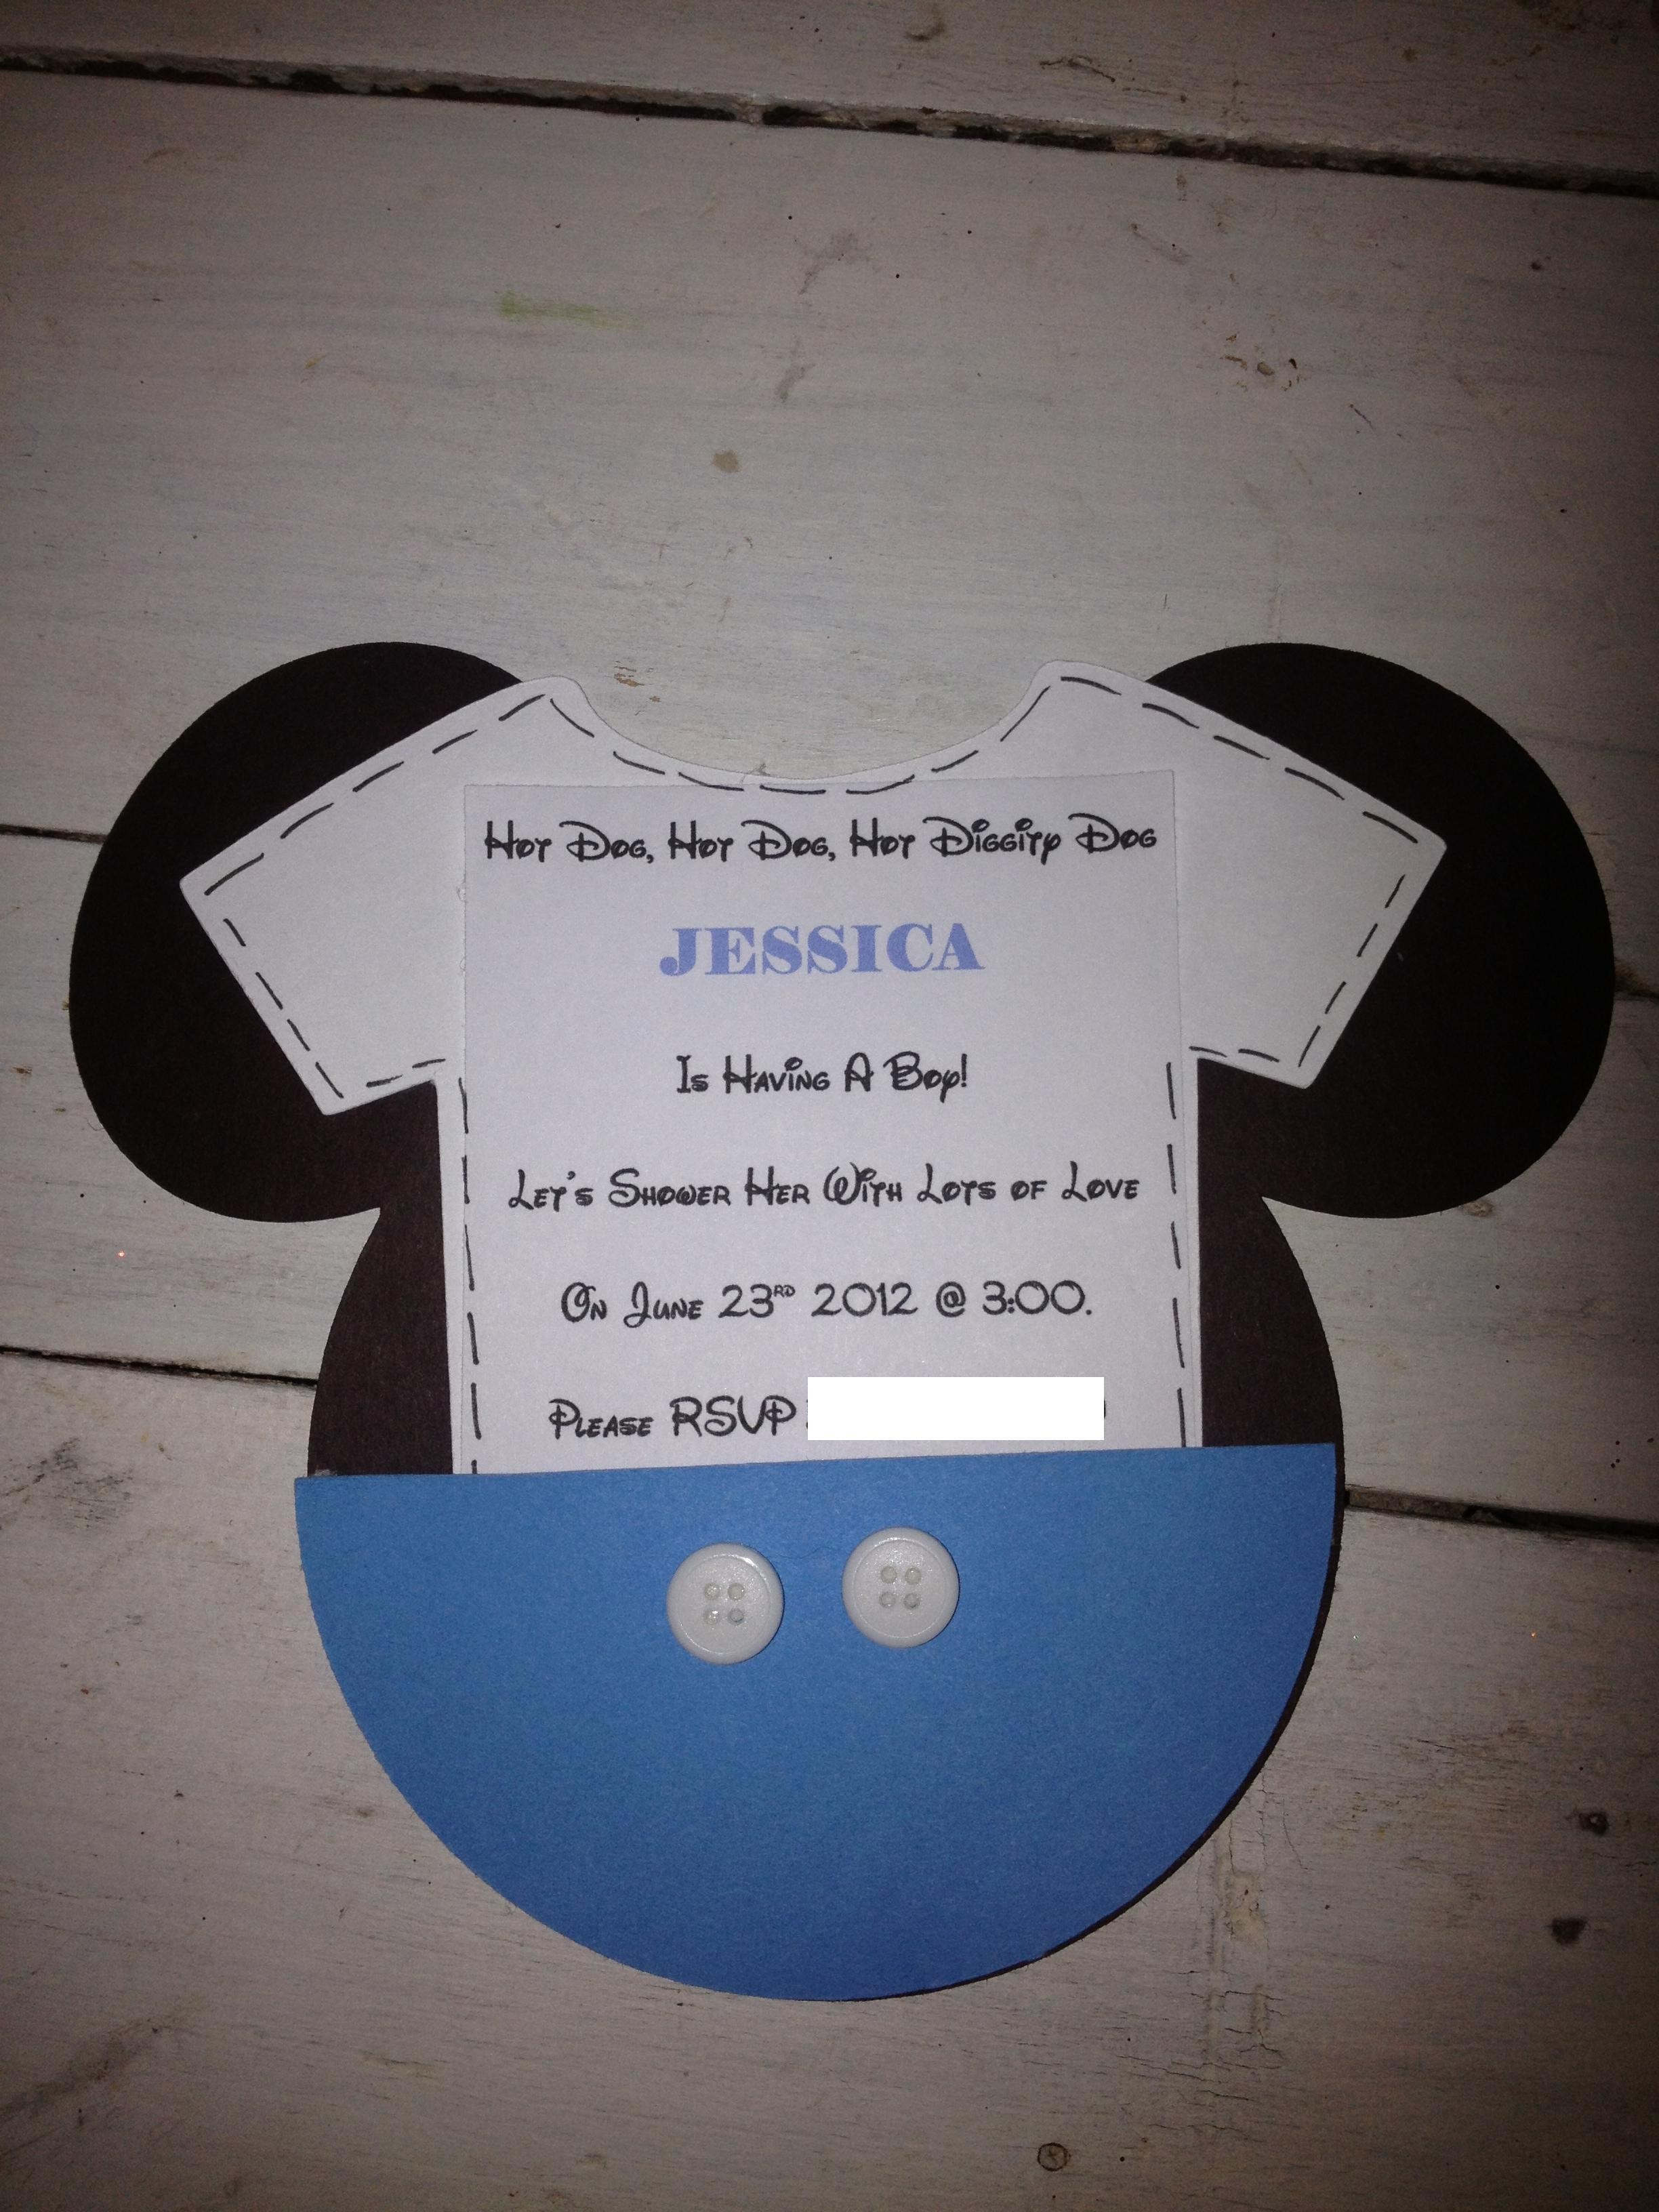 Online Mickey Mouse Invitations is awesome invitations layout